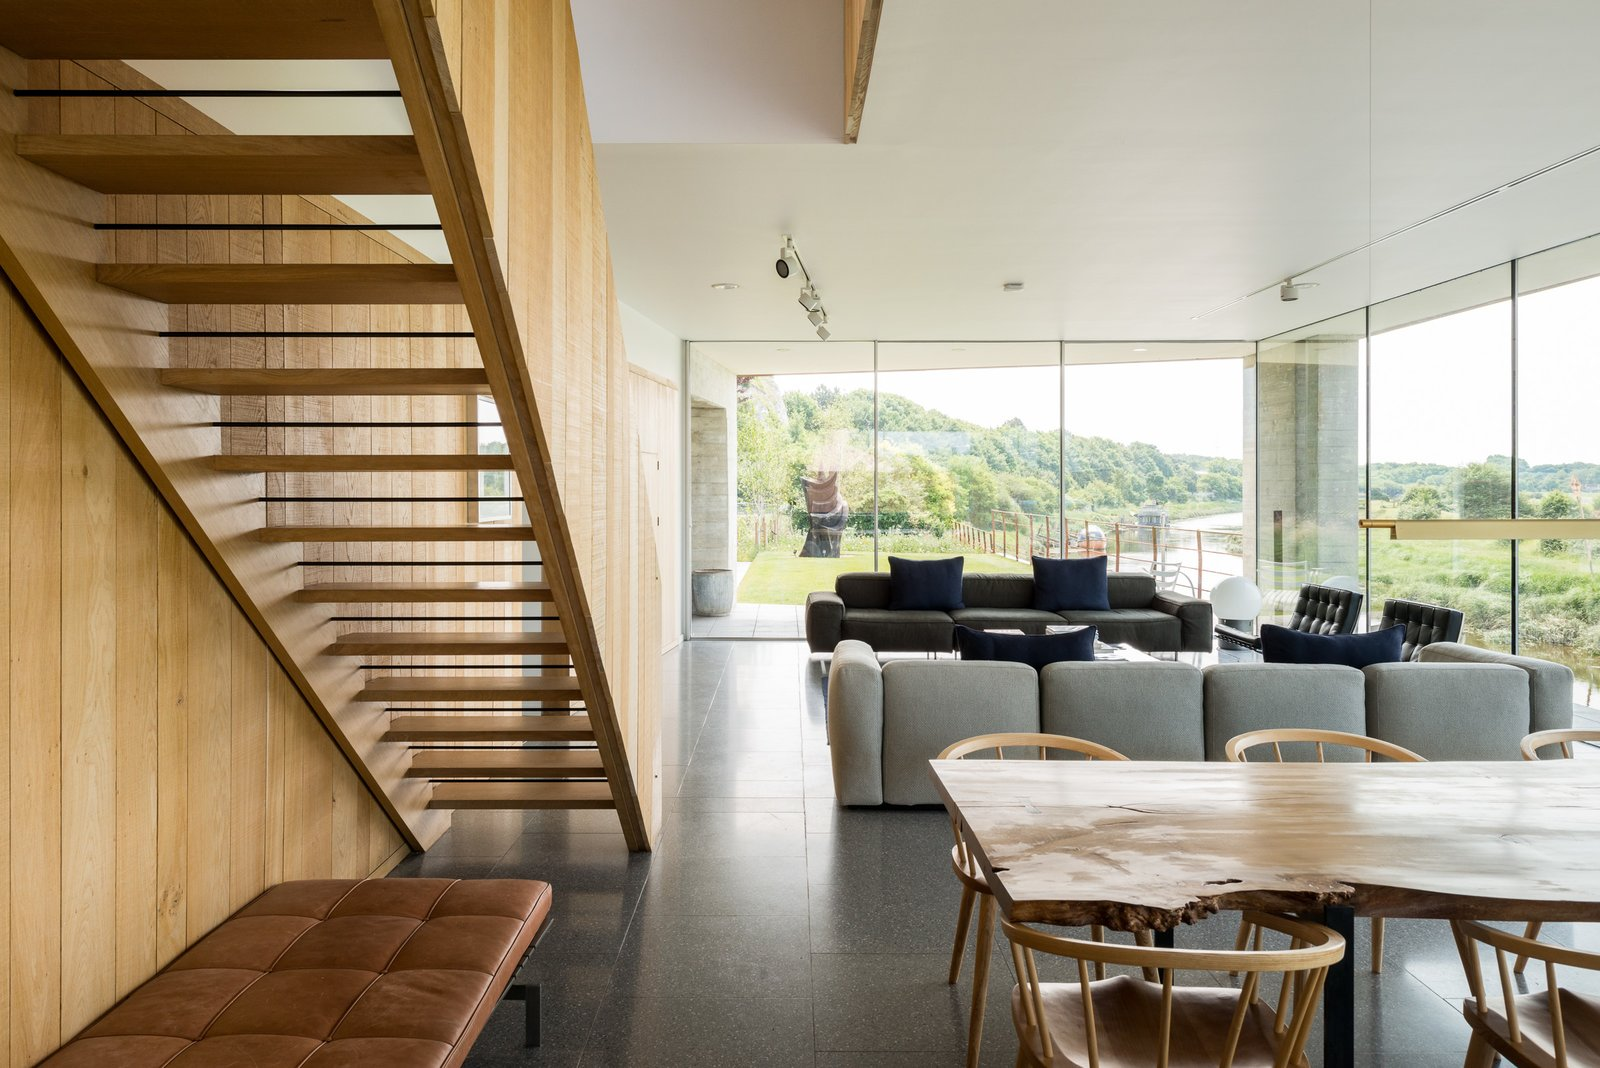 Staircase, Wood Tread, Wood Railing, and Metal Railing  Photo 12 of 12 in Explore a Prefabricated House For Sale in England That's Clad With Cor-Ten Steel